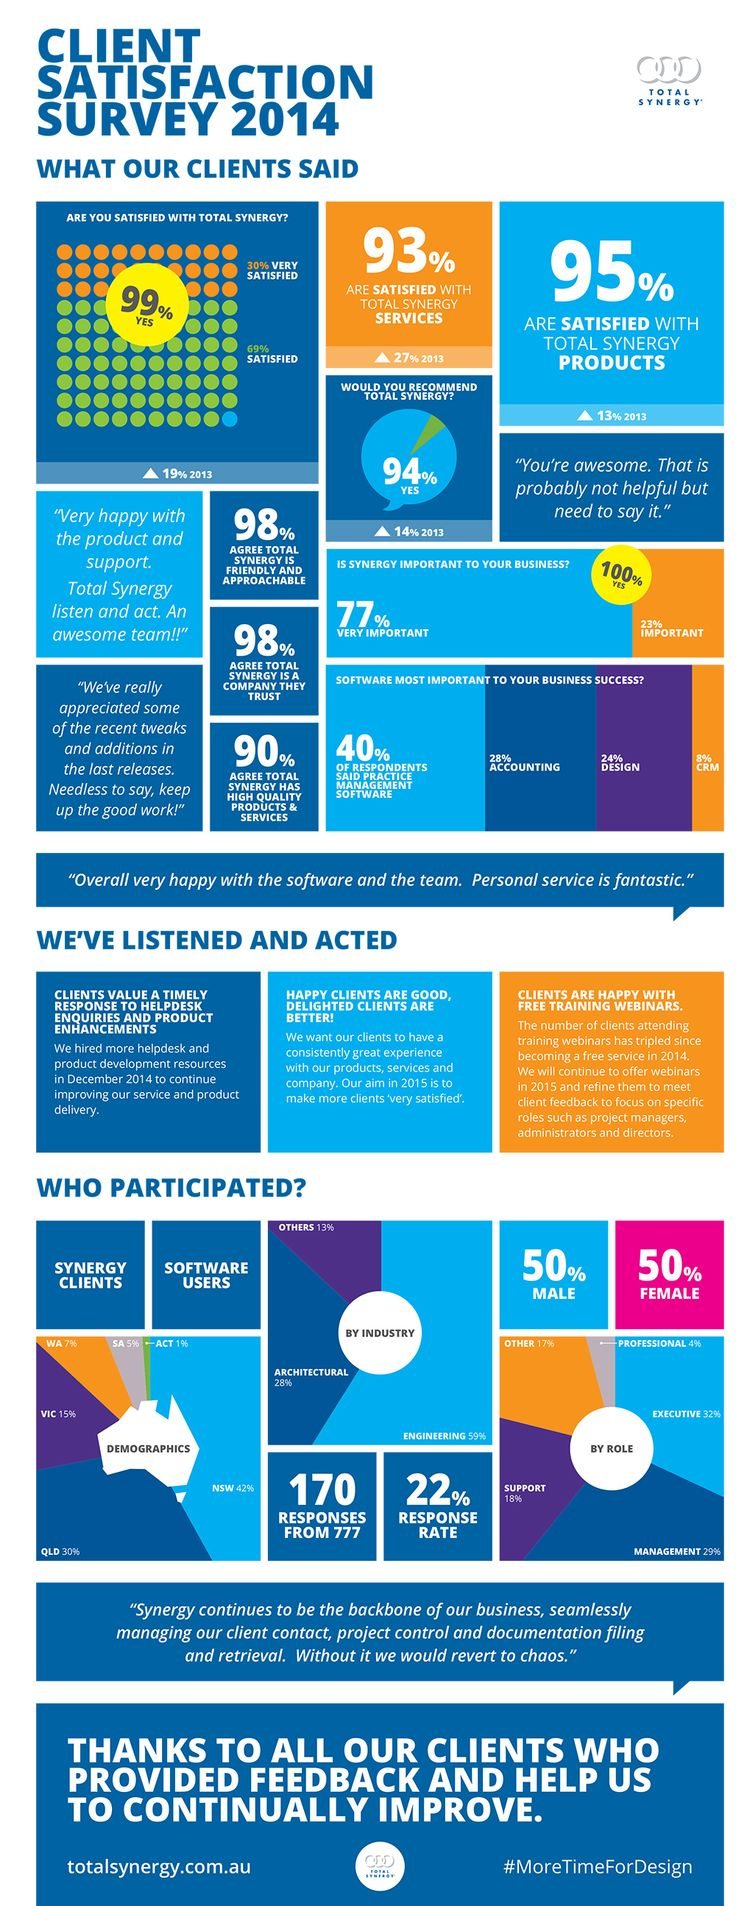 We released the results of our 2014 client satisfaction survey today. It's fair to say we're pretty stoked! Check out the infographic and letter from CEO Scott Osborne about the actions we're taking as a result.  A MASSIVE thanks to all our amazing clients – especially those who took a few minutes to give us their very candid feedback! It's these fabulous people and businesses that drive our team to strive to deliver a consistently great experience with Synergy. #moretimefordesign #aec